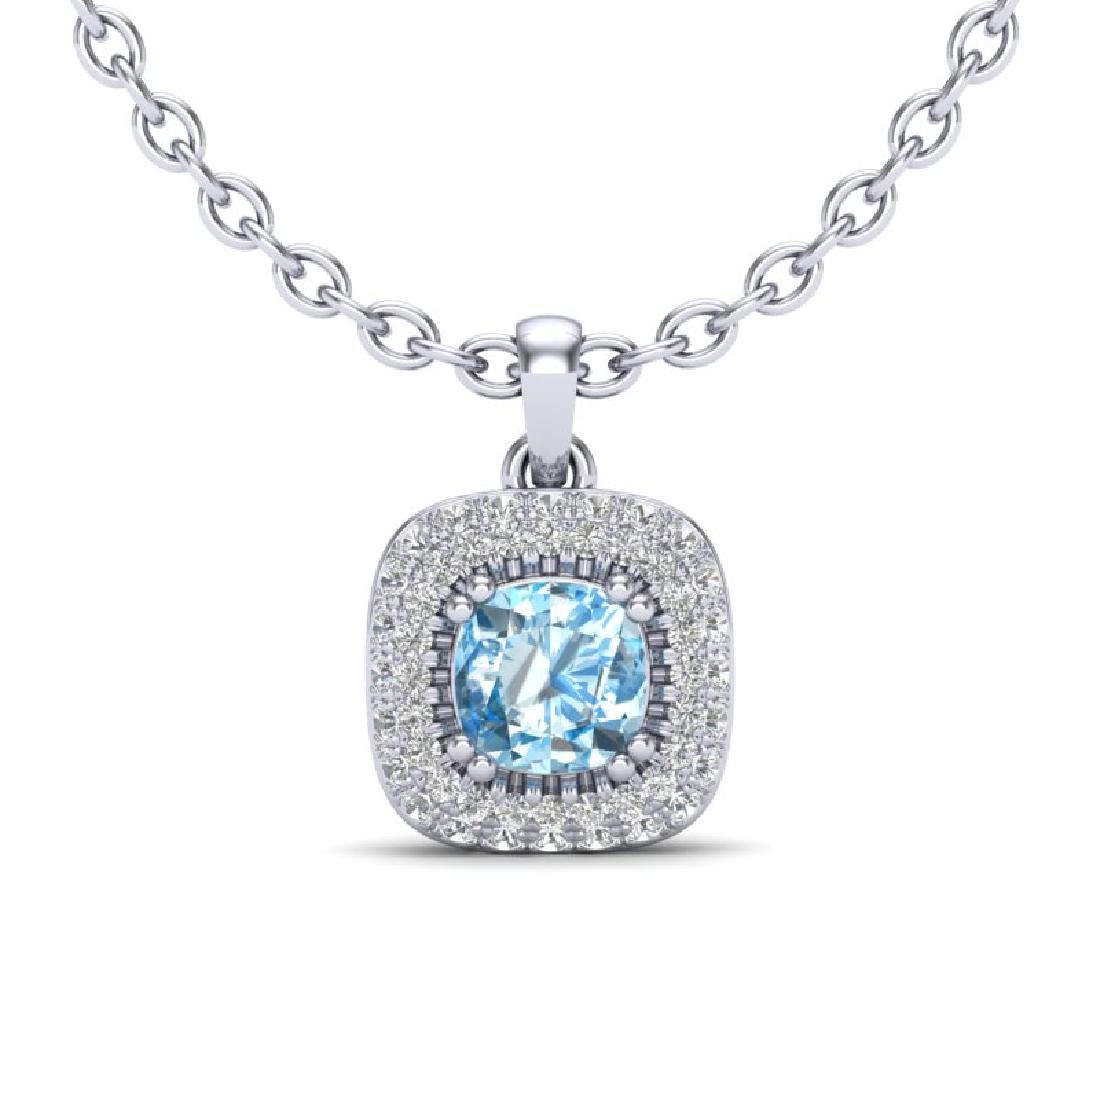 1.08 CTW Sky Blue Topaz & Micro VS/SI Diamond Necklace